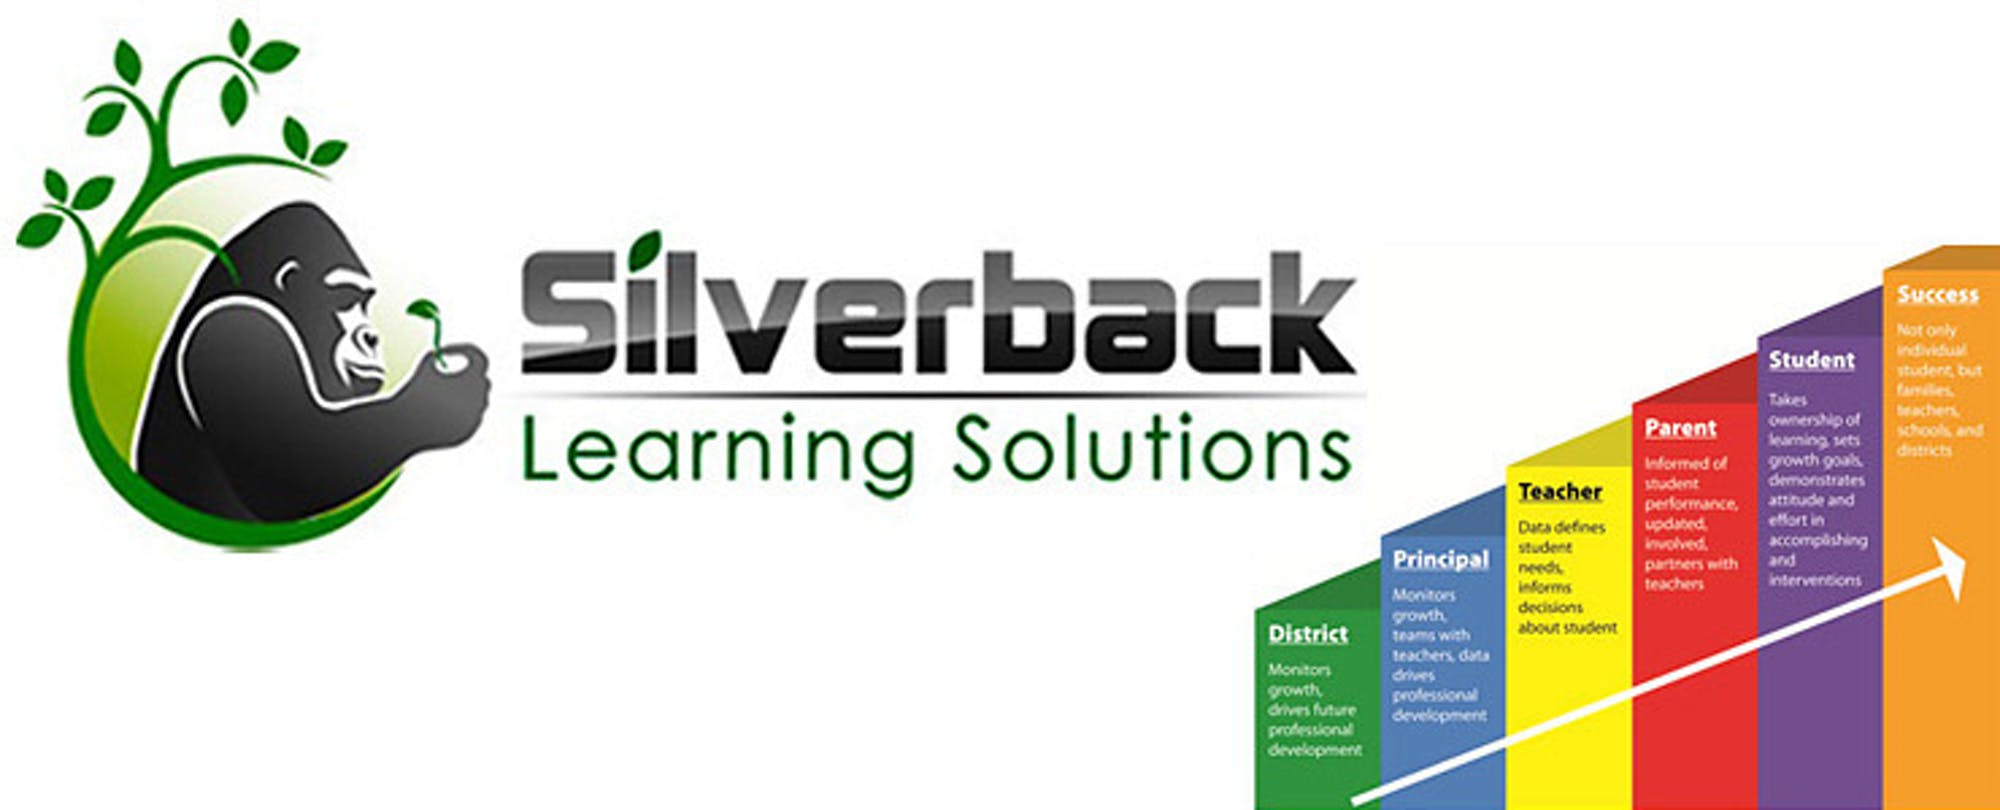 Silverback Learning Raises $2.5M to Drive Personalized Instruction